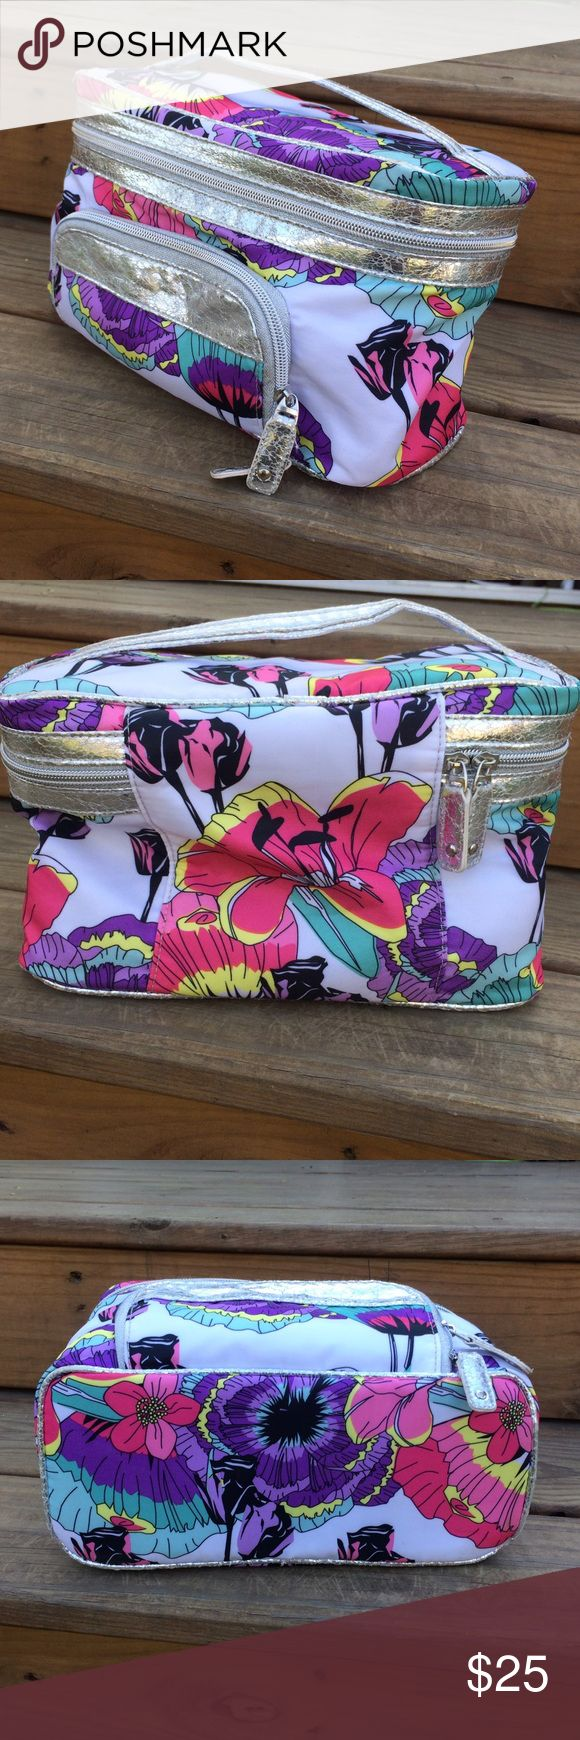 """Sonia Kashuk 3 Pc Train Case Cosmetic Make Up Bag Super cute cosmetic bag w detachable/removable pouches & front zip pocket. In excellent very gently used condition - no stains  Measures 10.5"""" x 6.5"""" x 5"""" Thanks! sonia kashuk Bags Cosmetic Bags & Cases"""